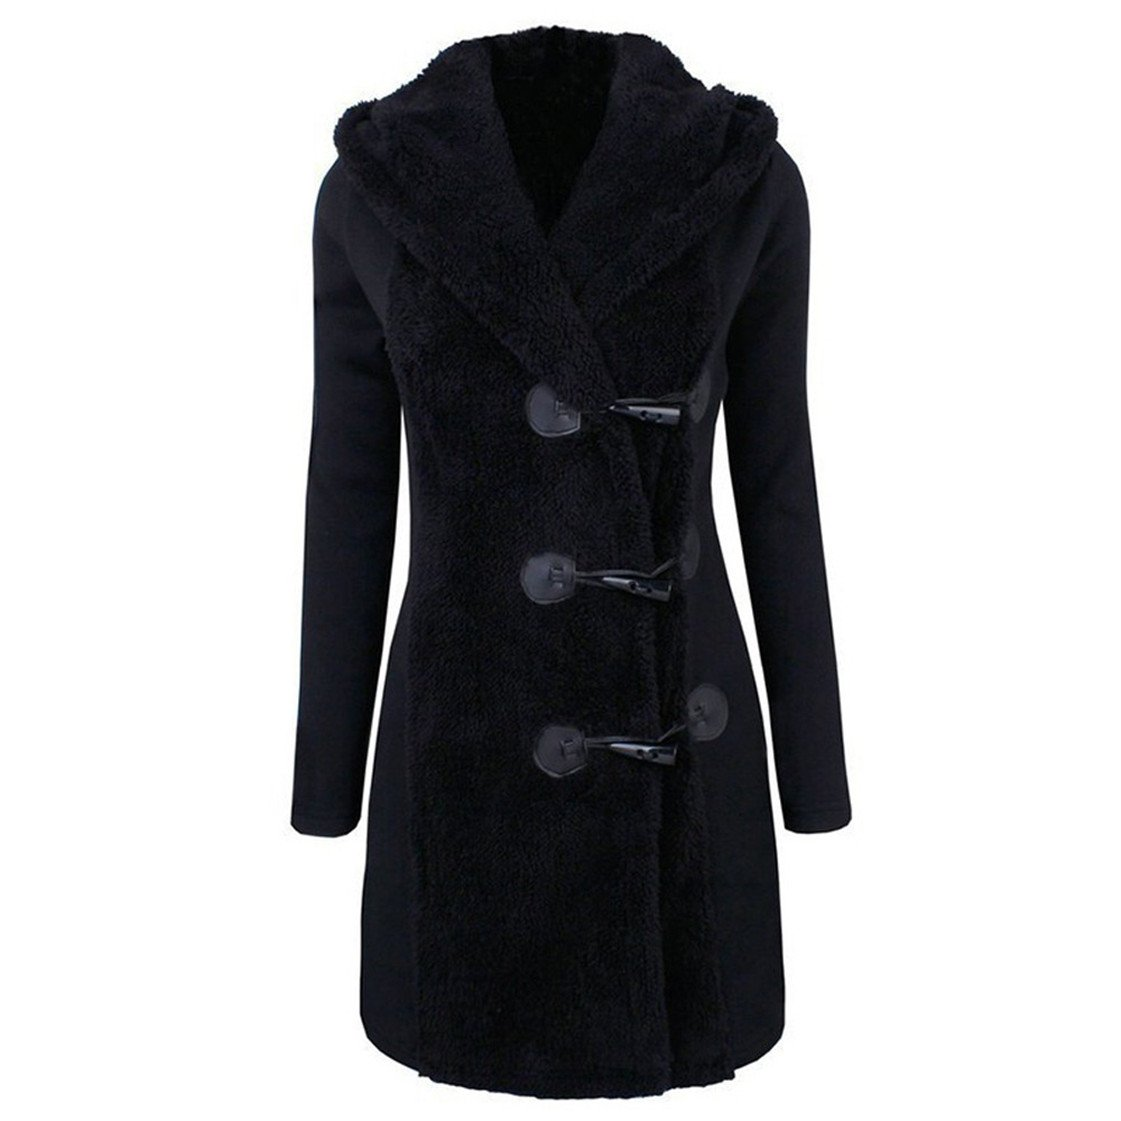 Mose New Fashion Women Long Sleeve Winter Warm Slim Thicker Buttons Parka Hoodie Coat Overcoat (Black, L)